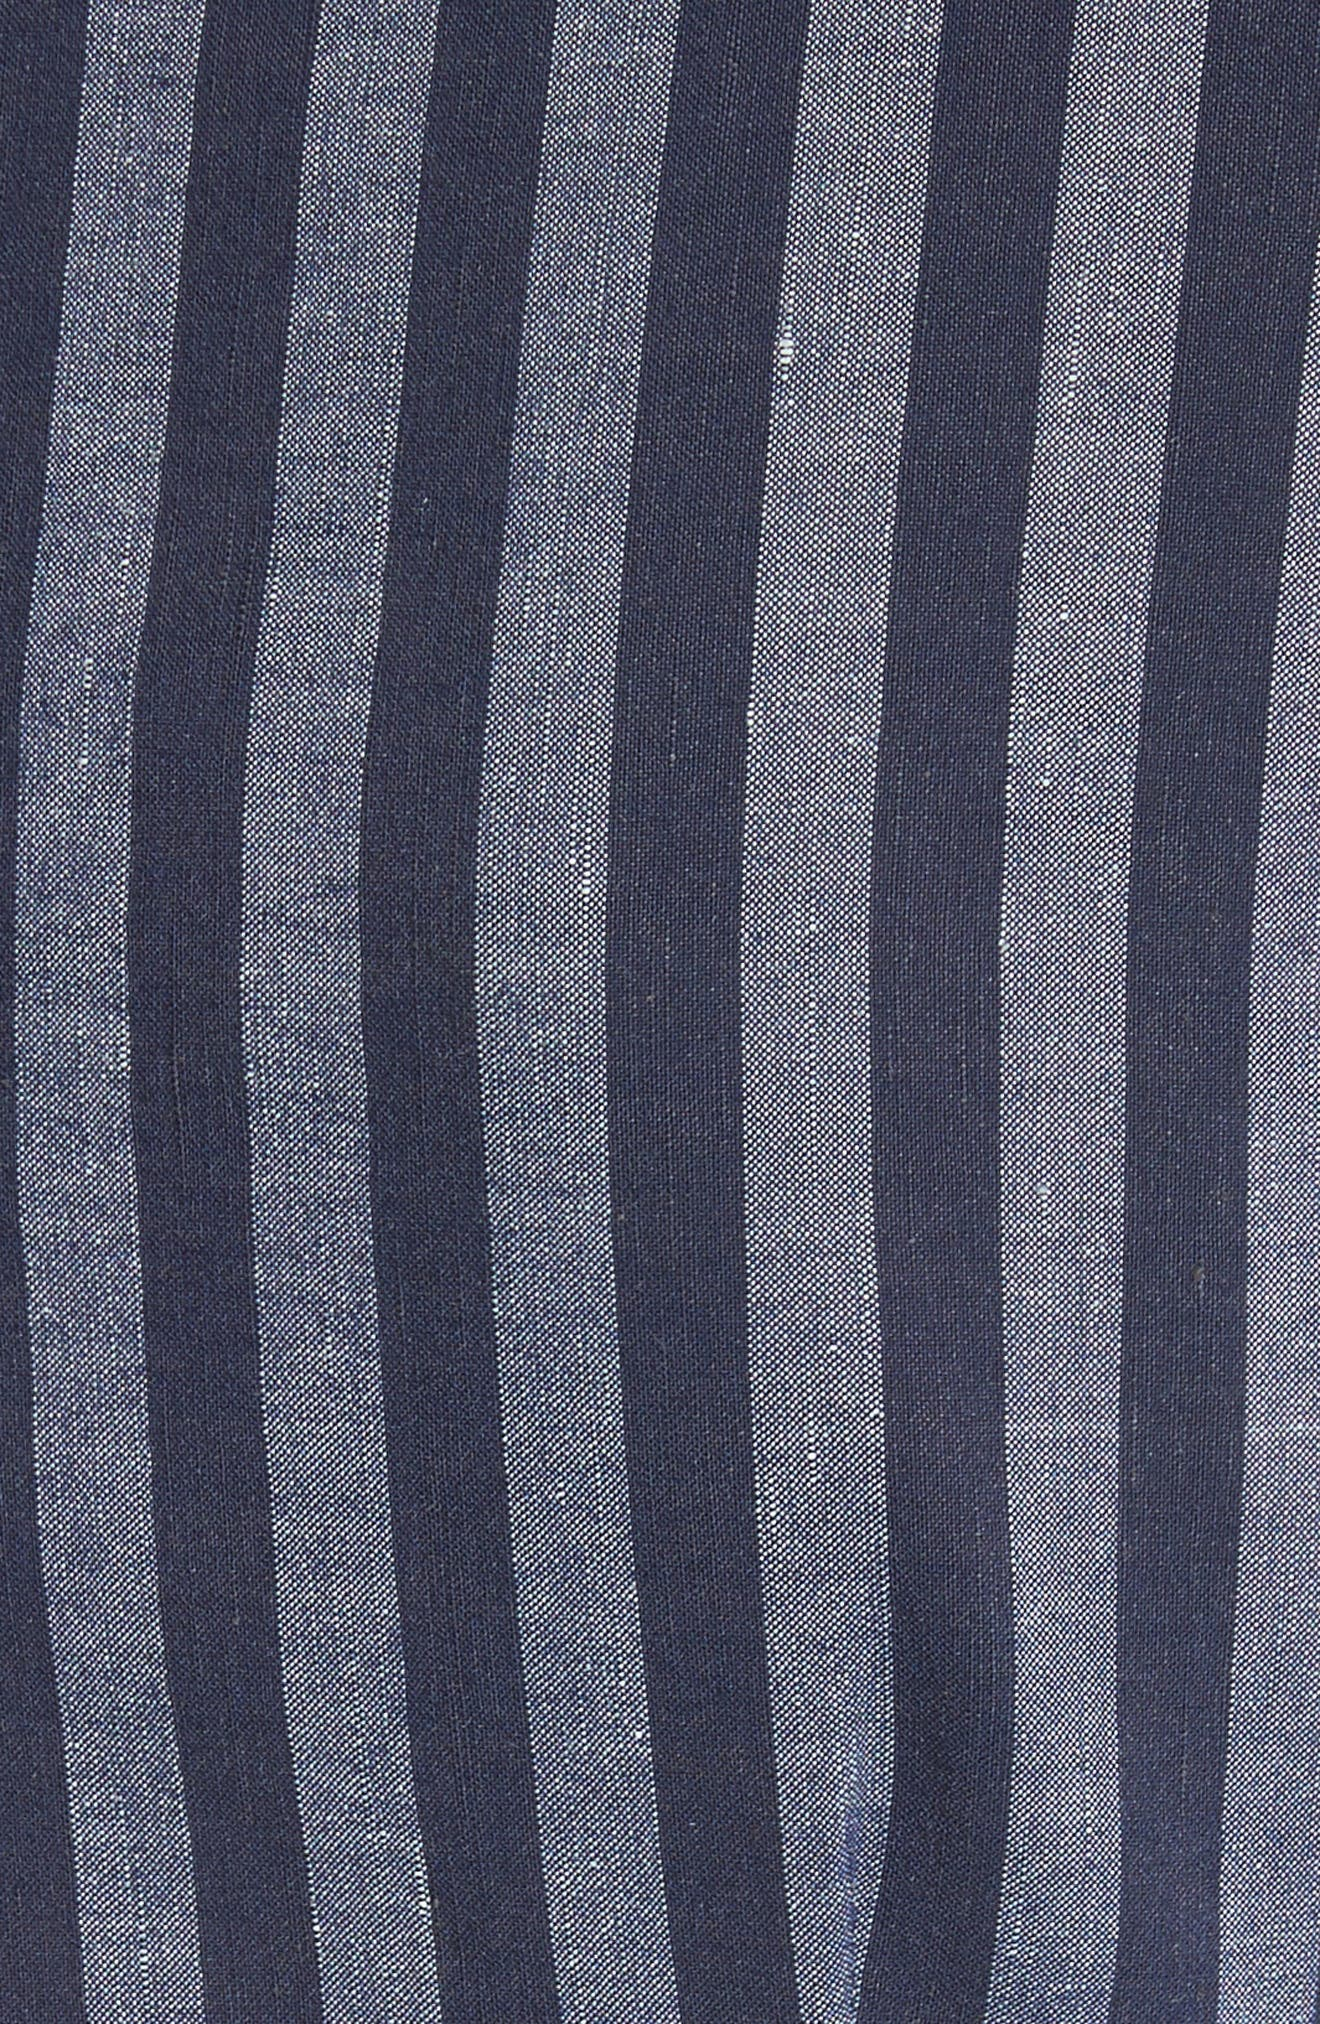 TRACY REESE,                             Directional Stripe A-Line Dress,                             Alternate thumbnail 5, color,                             417